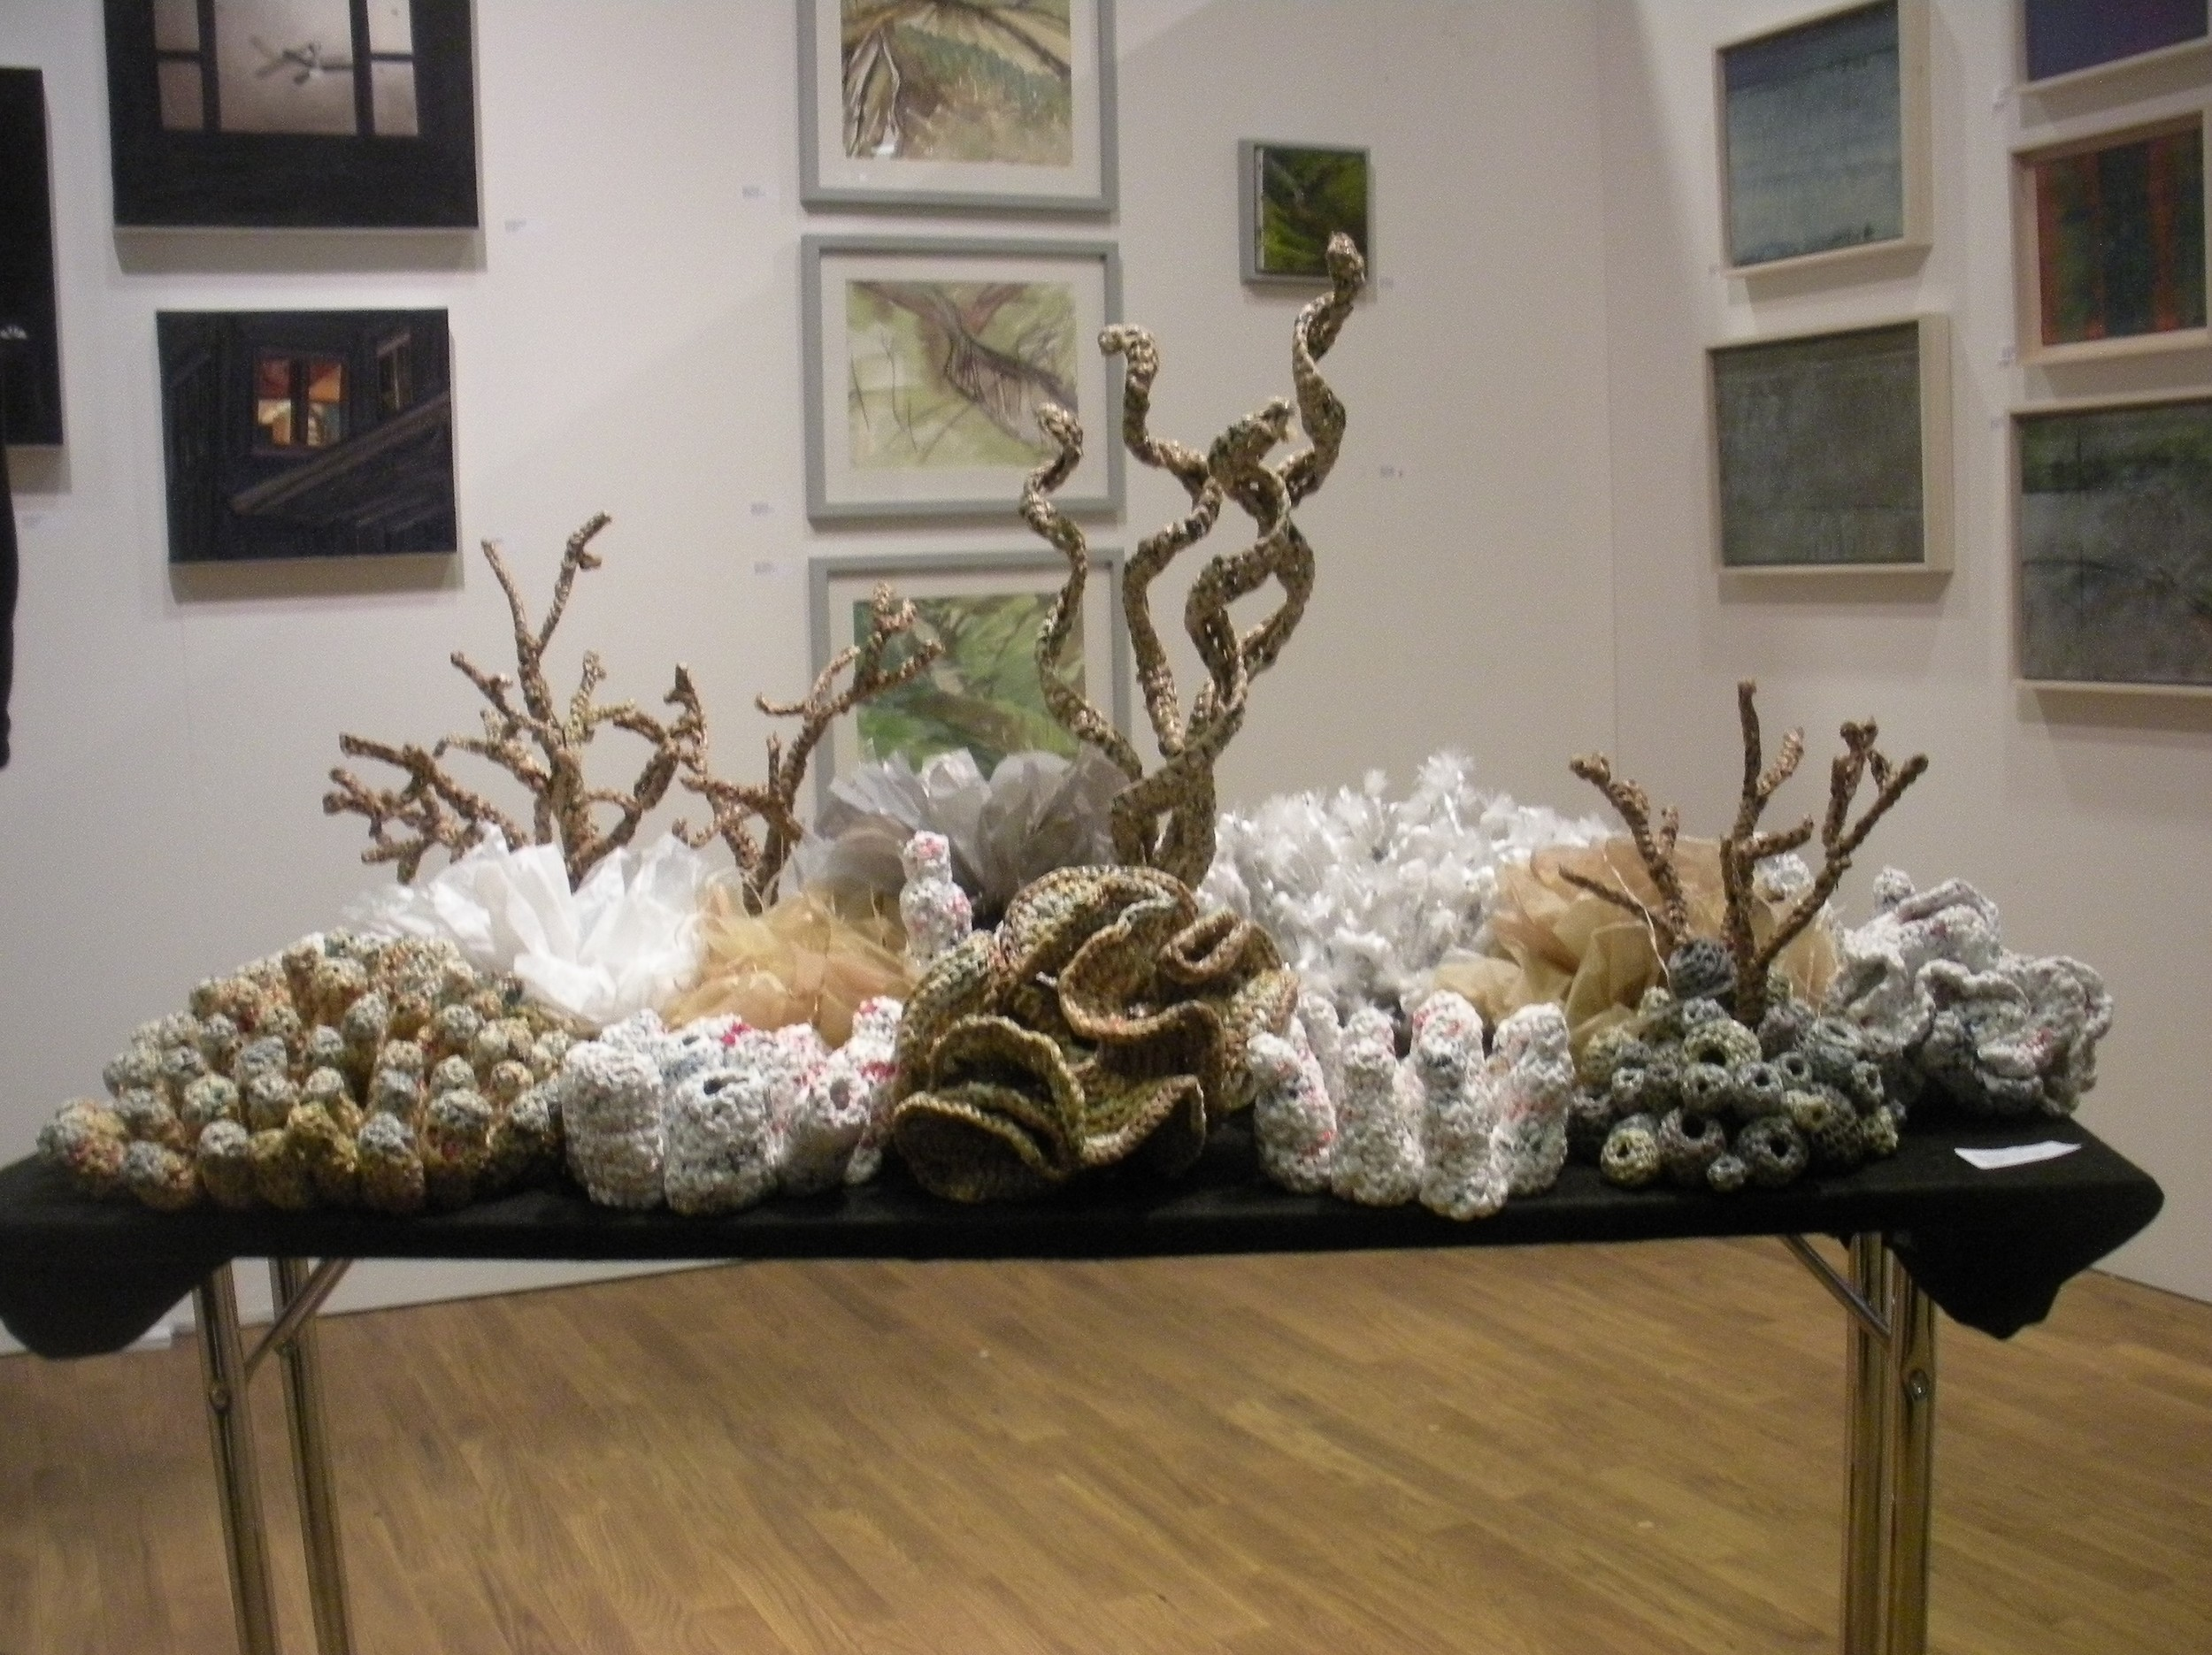 Foreground: Coral Reef, by Mary Ellen Croteau, crocheted plastic bags. Background: ( left to right) paintings by Gwen Zabicki, Alison Whitmore, Jane Michalski.